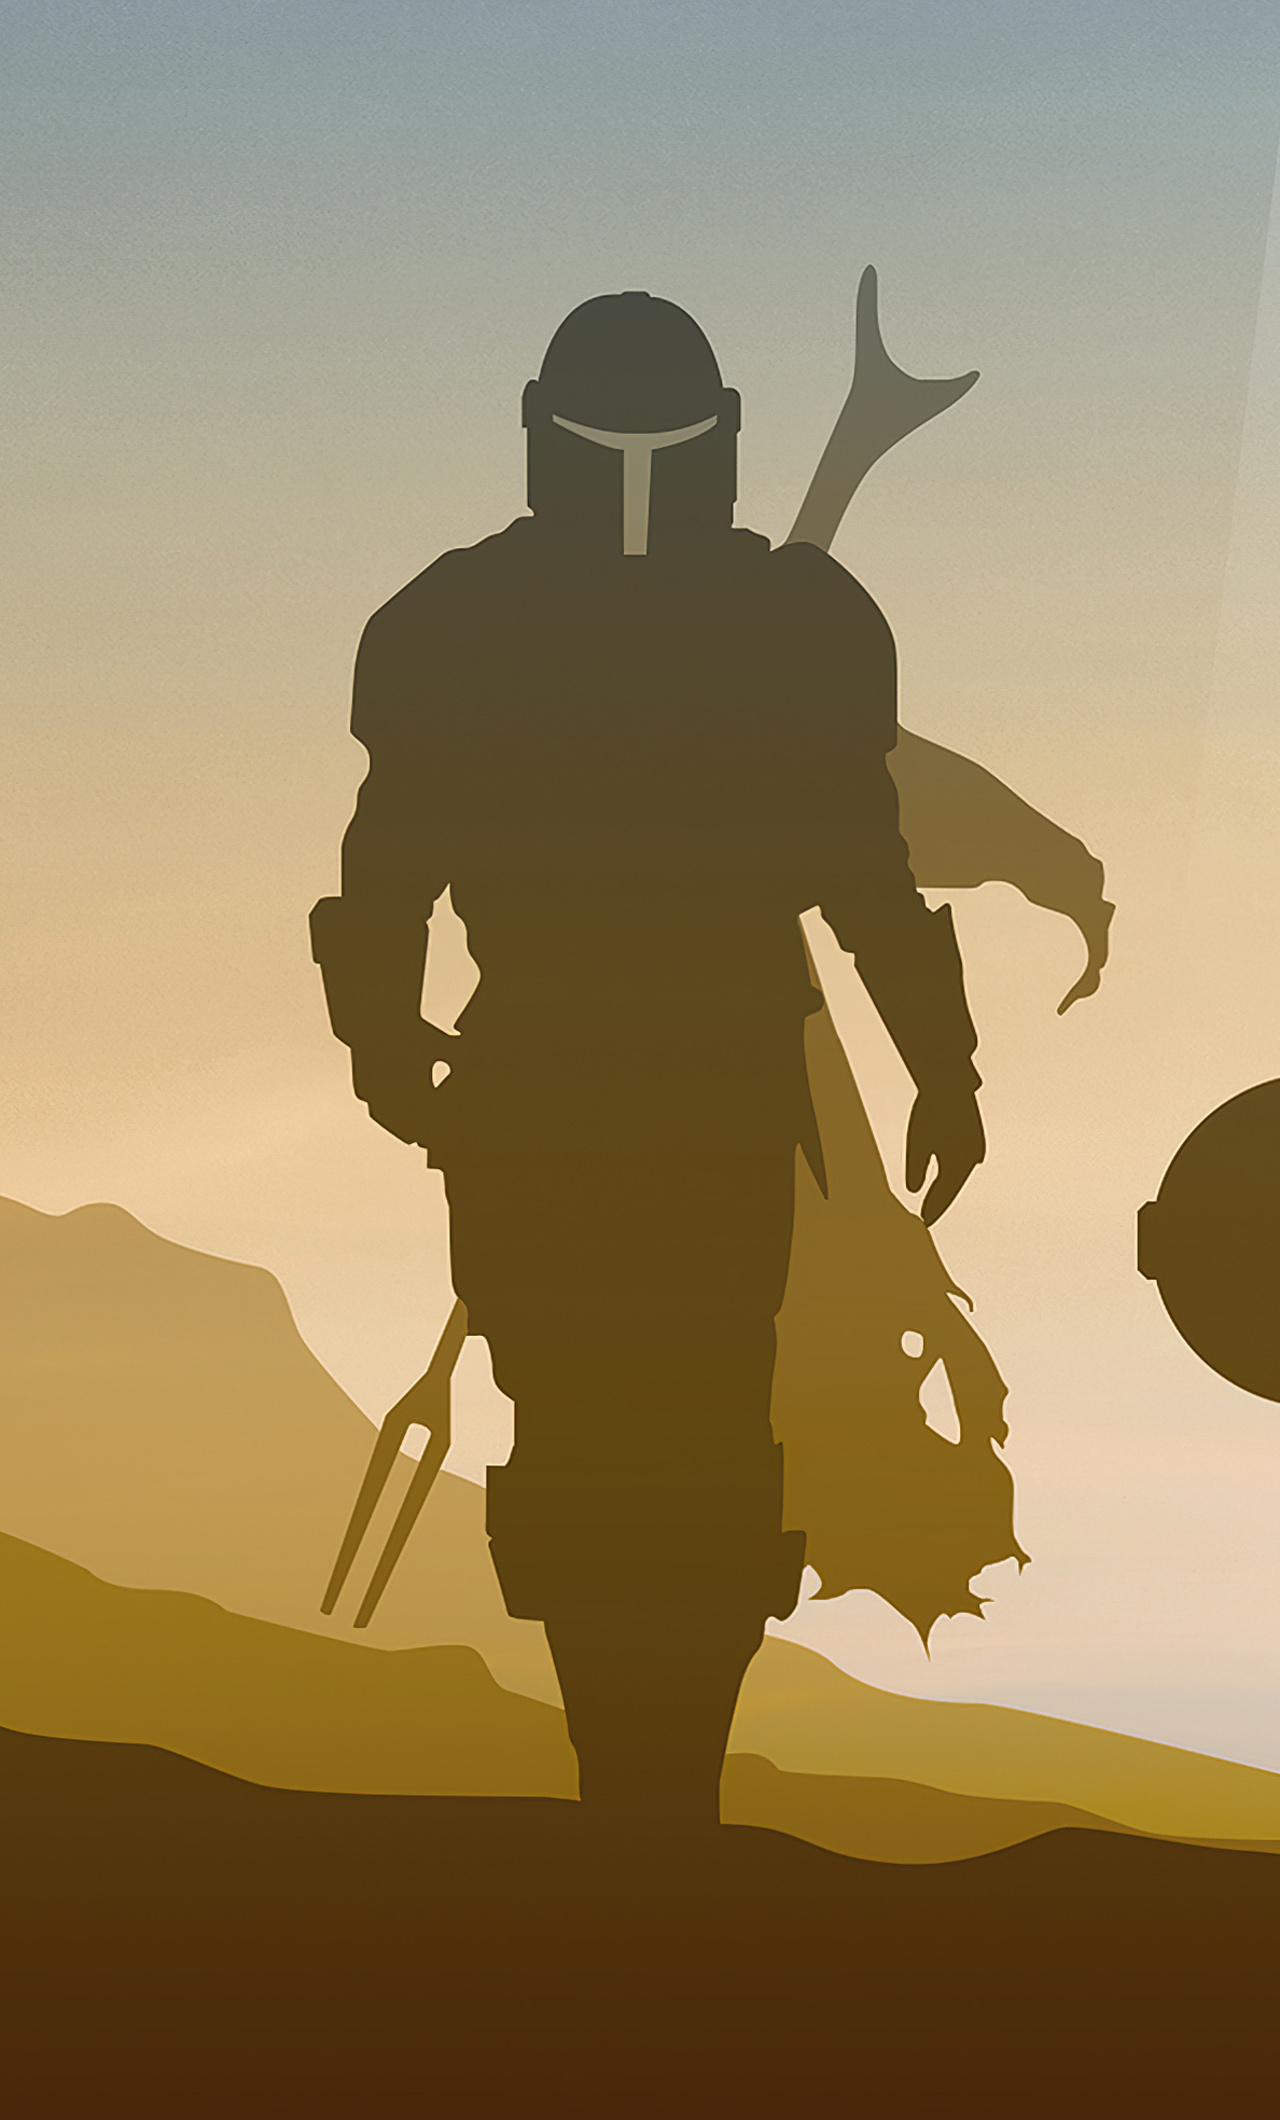 1280x2120 Star Wars The Mandalorian Minimalist 4k Iphone 6 Hd 4k Wallpapers Images Backgrounds Photos And Pictures